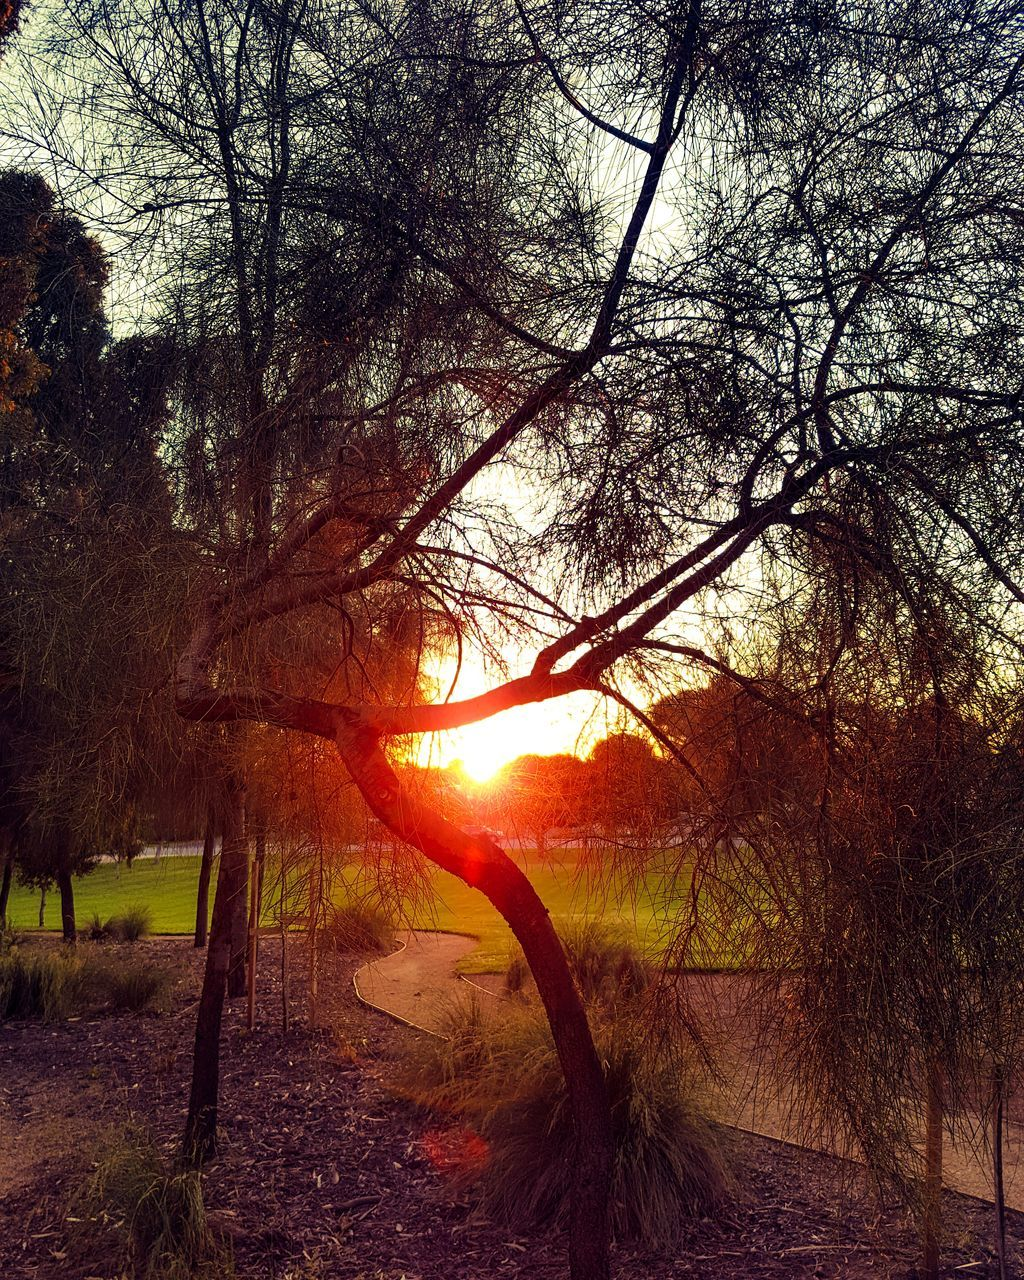 tree, tranquility, sunset, tranquil scene, nature, sun, beauty in nature, scenics, no people, branch, sunlight, bare tree, outdoors, growth, silhouette, forest, tree trunk, water, sky, day